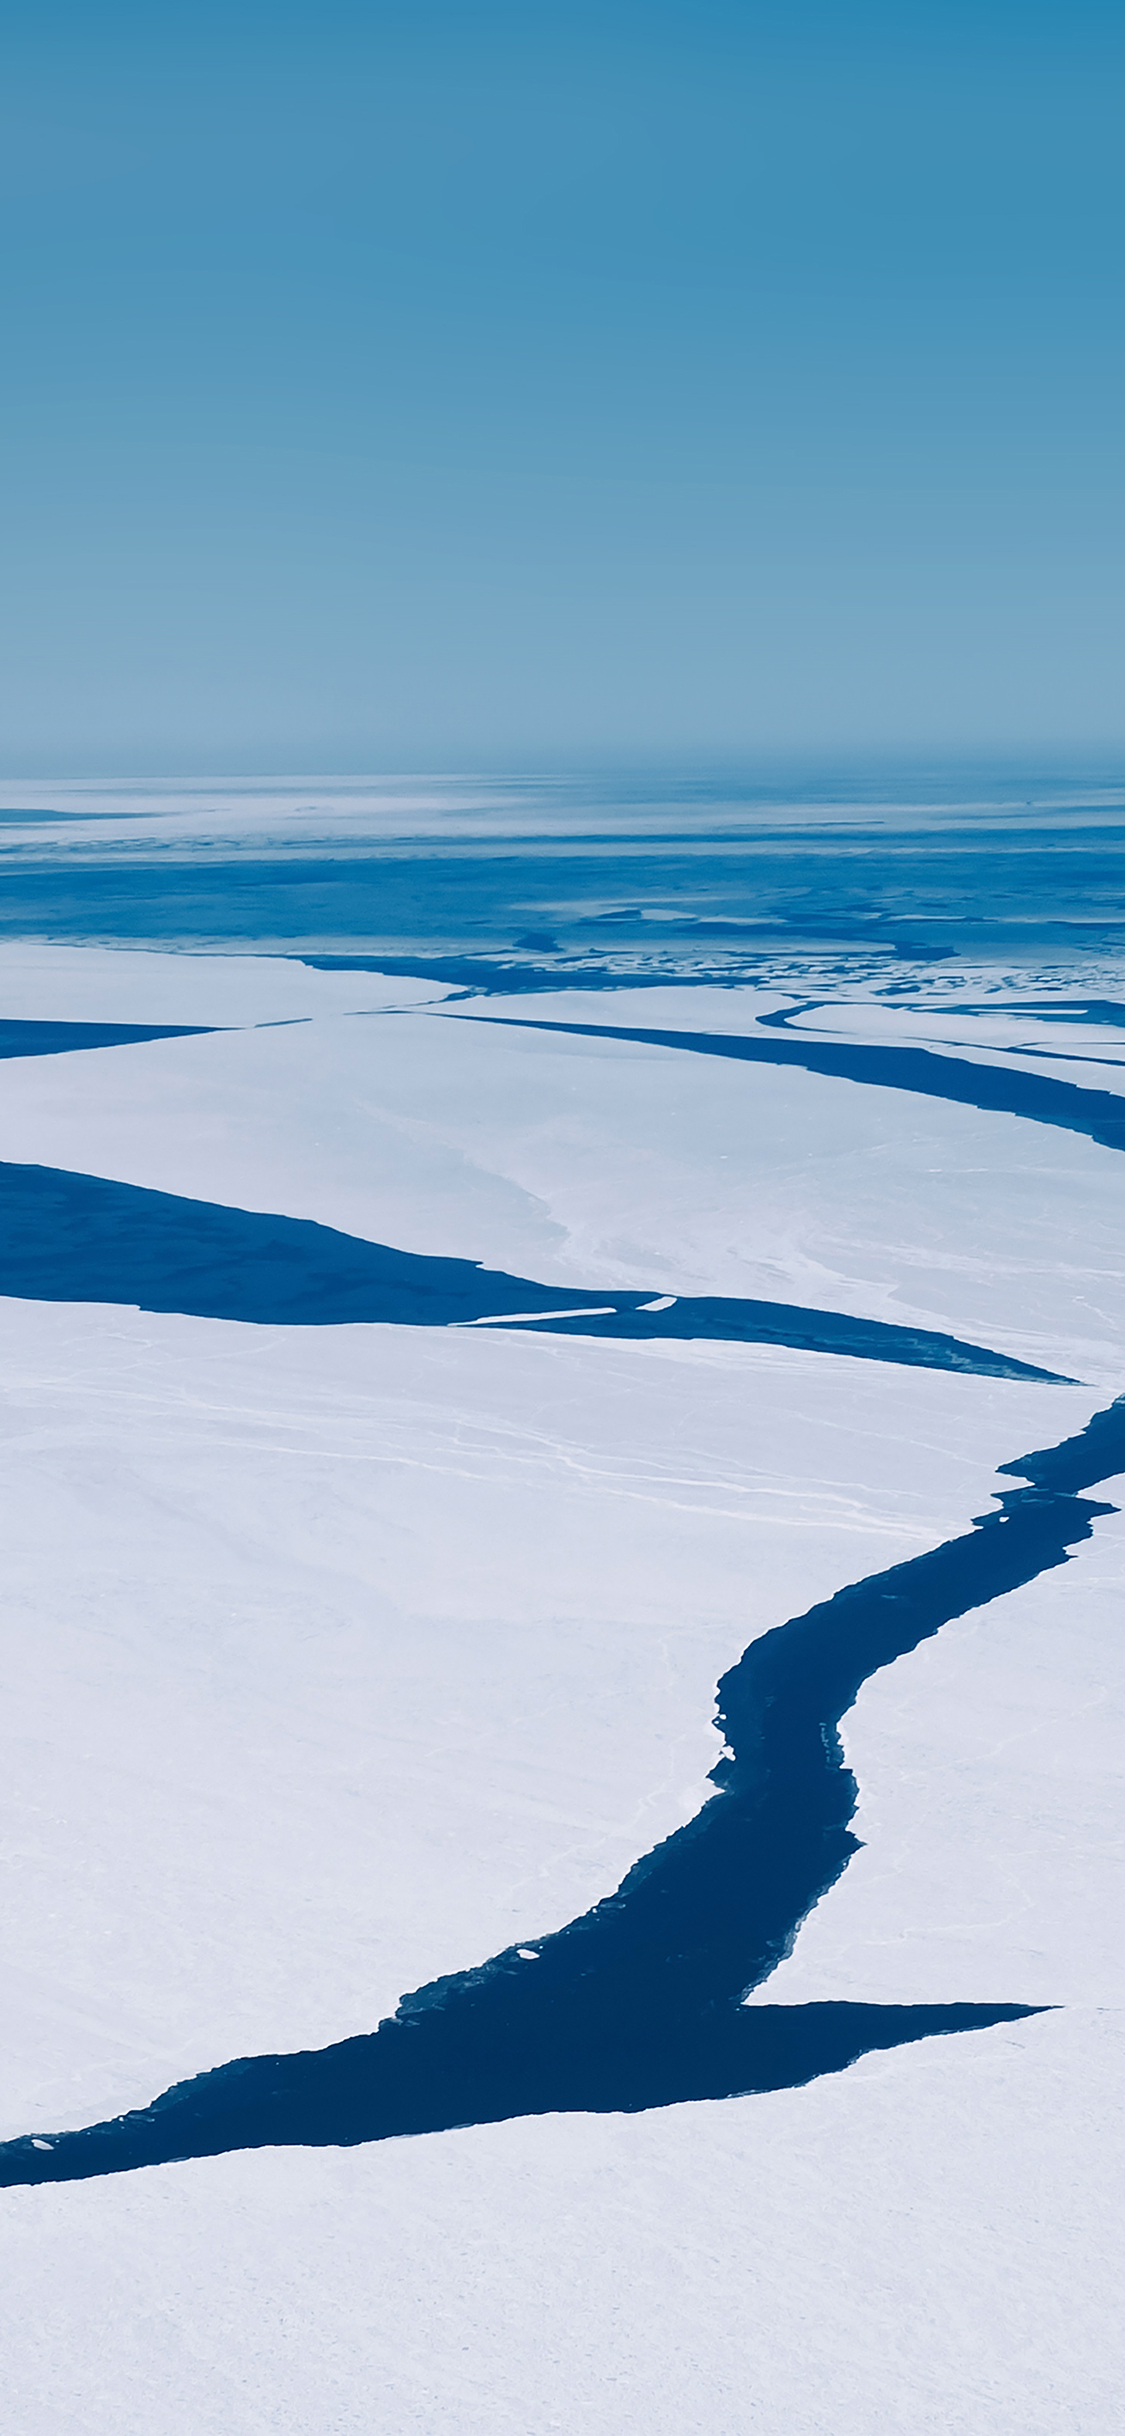 iPhoneXpapers.com-Apple-iPhone-wallpaper-md27-wallpaper-ice-river-white-sea